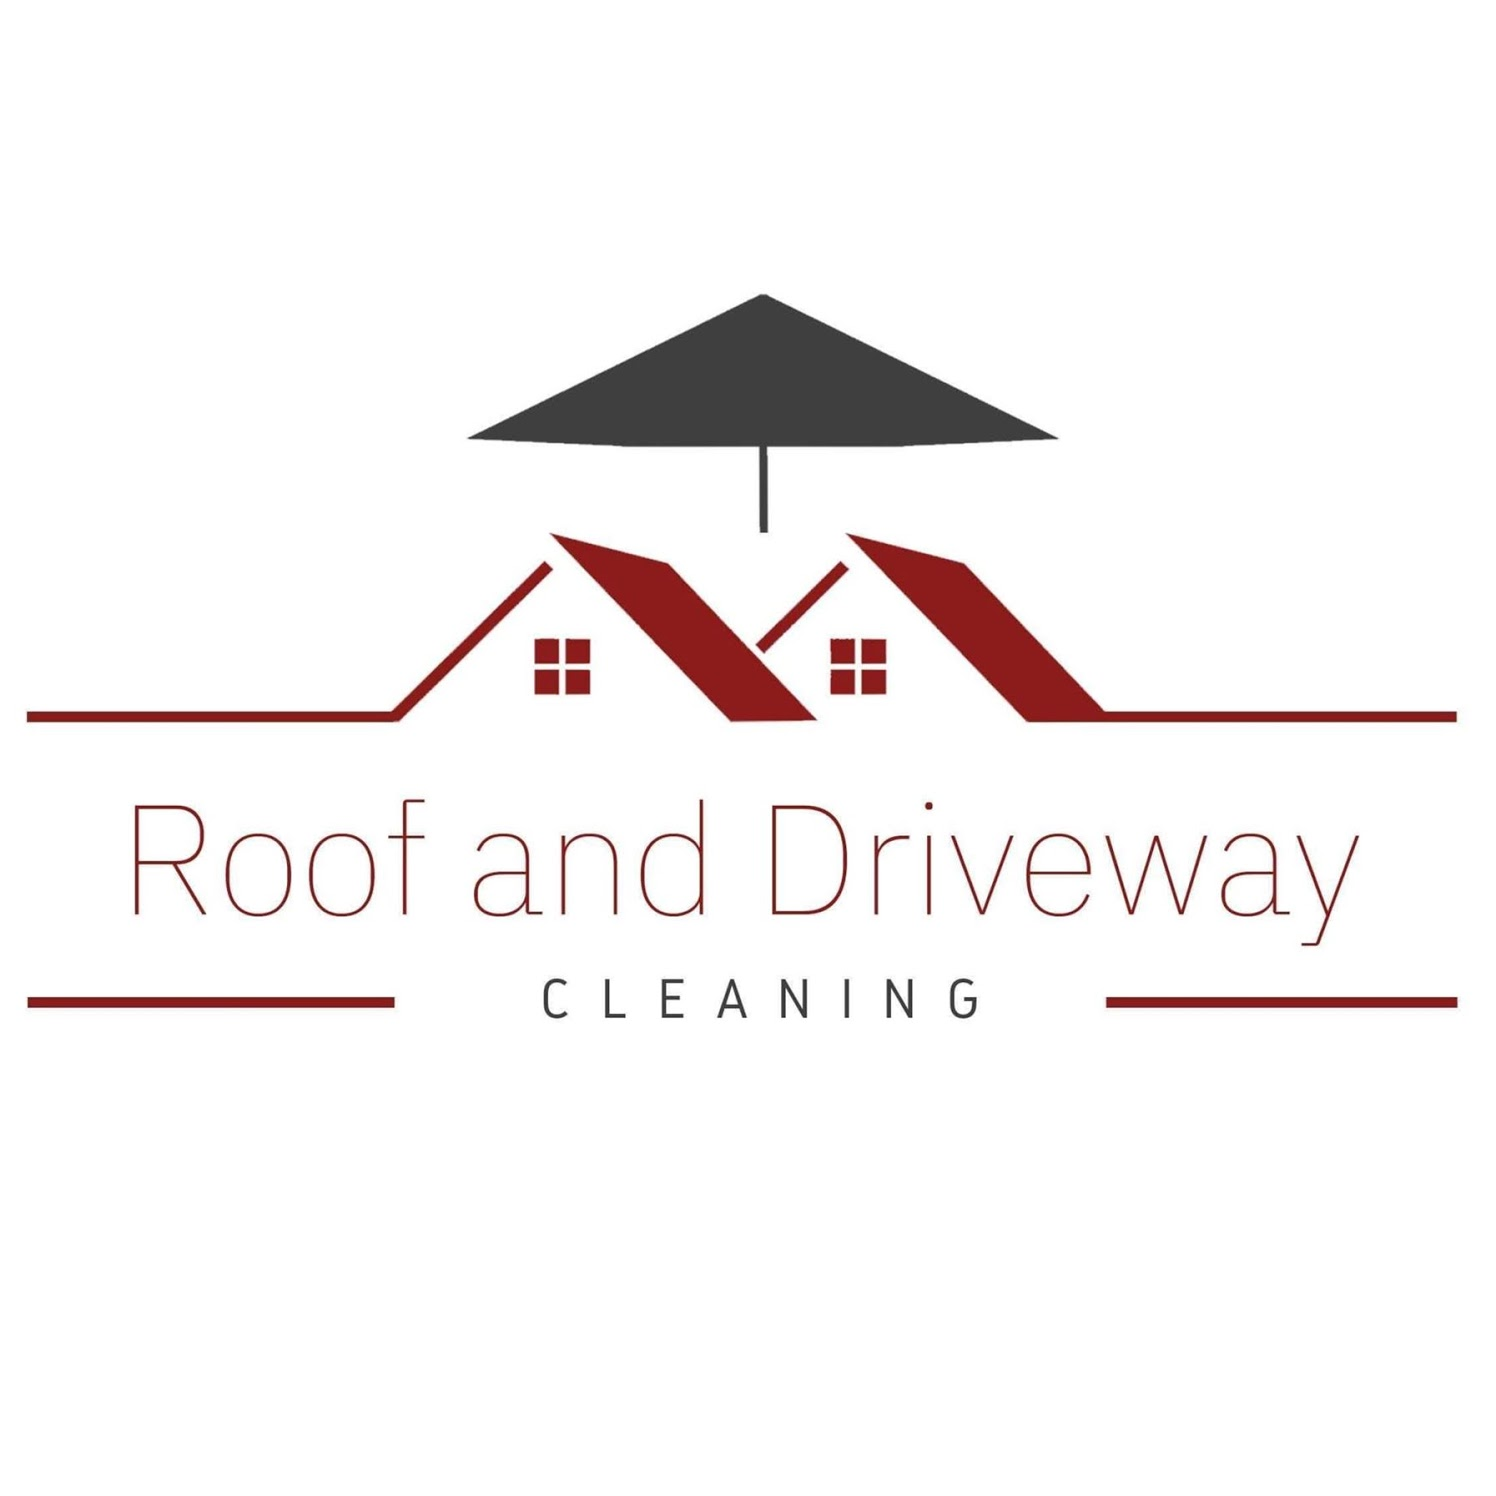 Roof Cleaning & Moss Removal Maidstone Protects and Maintains the Roofs of the Properties in Maidstone